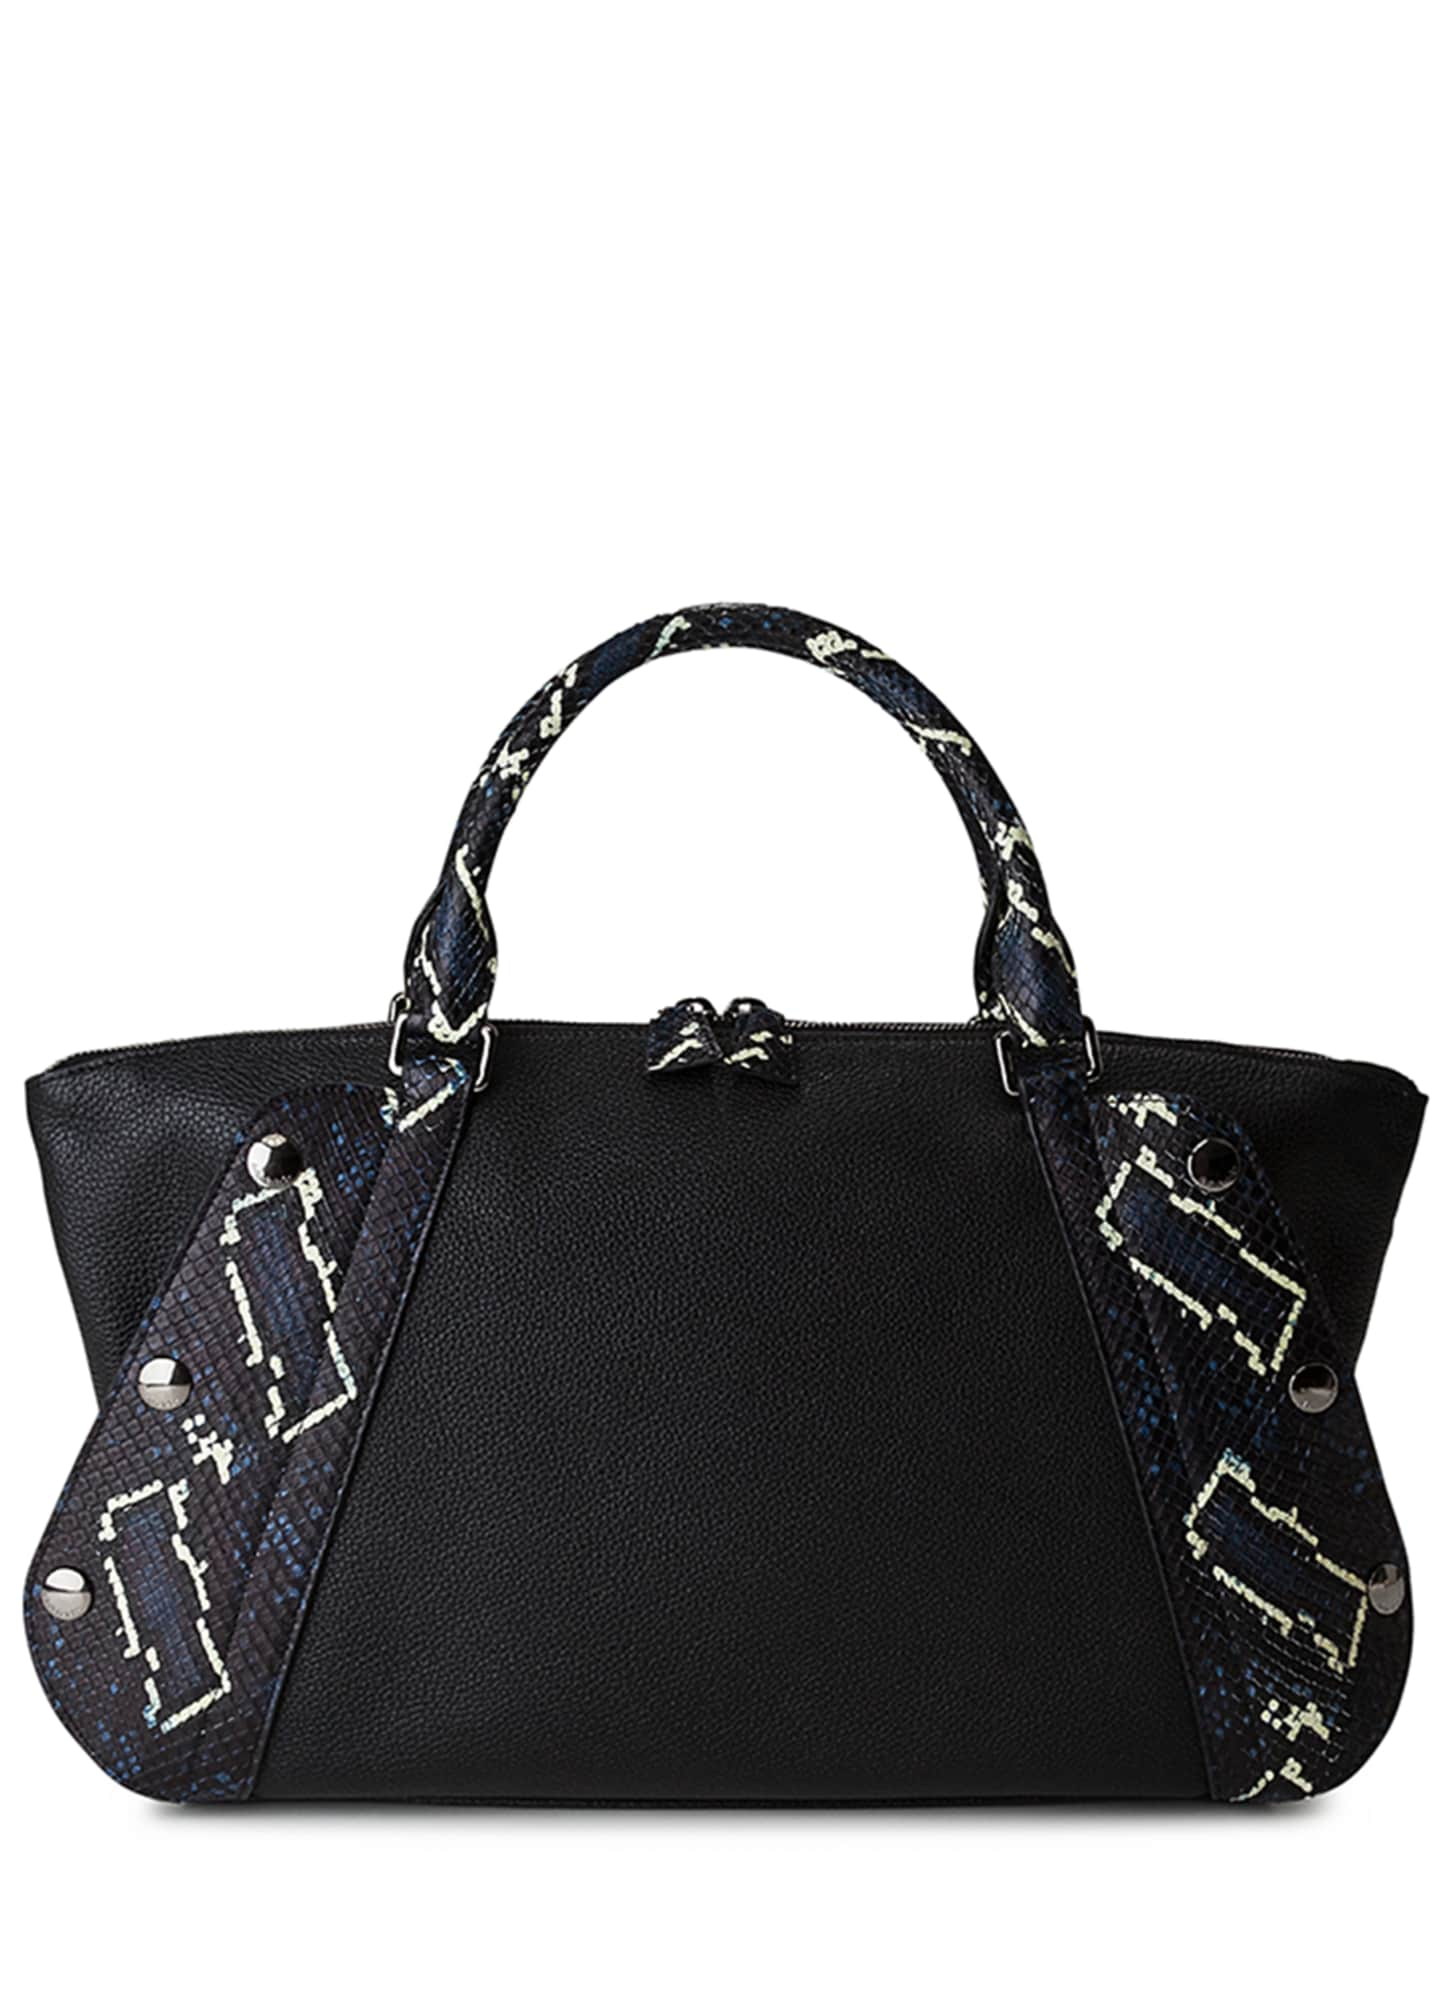 Image 1 of 4: Aimee Small Convertible Leather/Python Satchel Bag